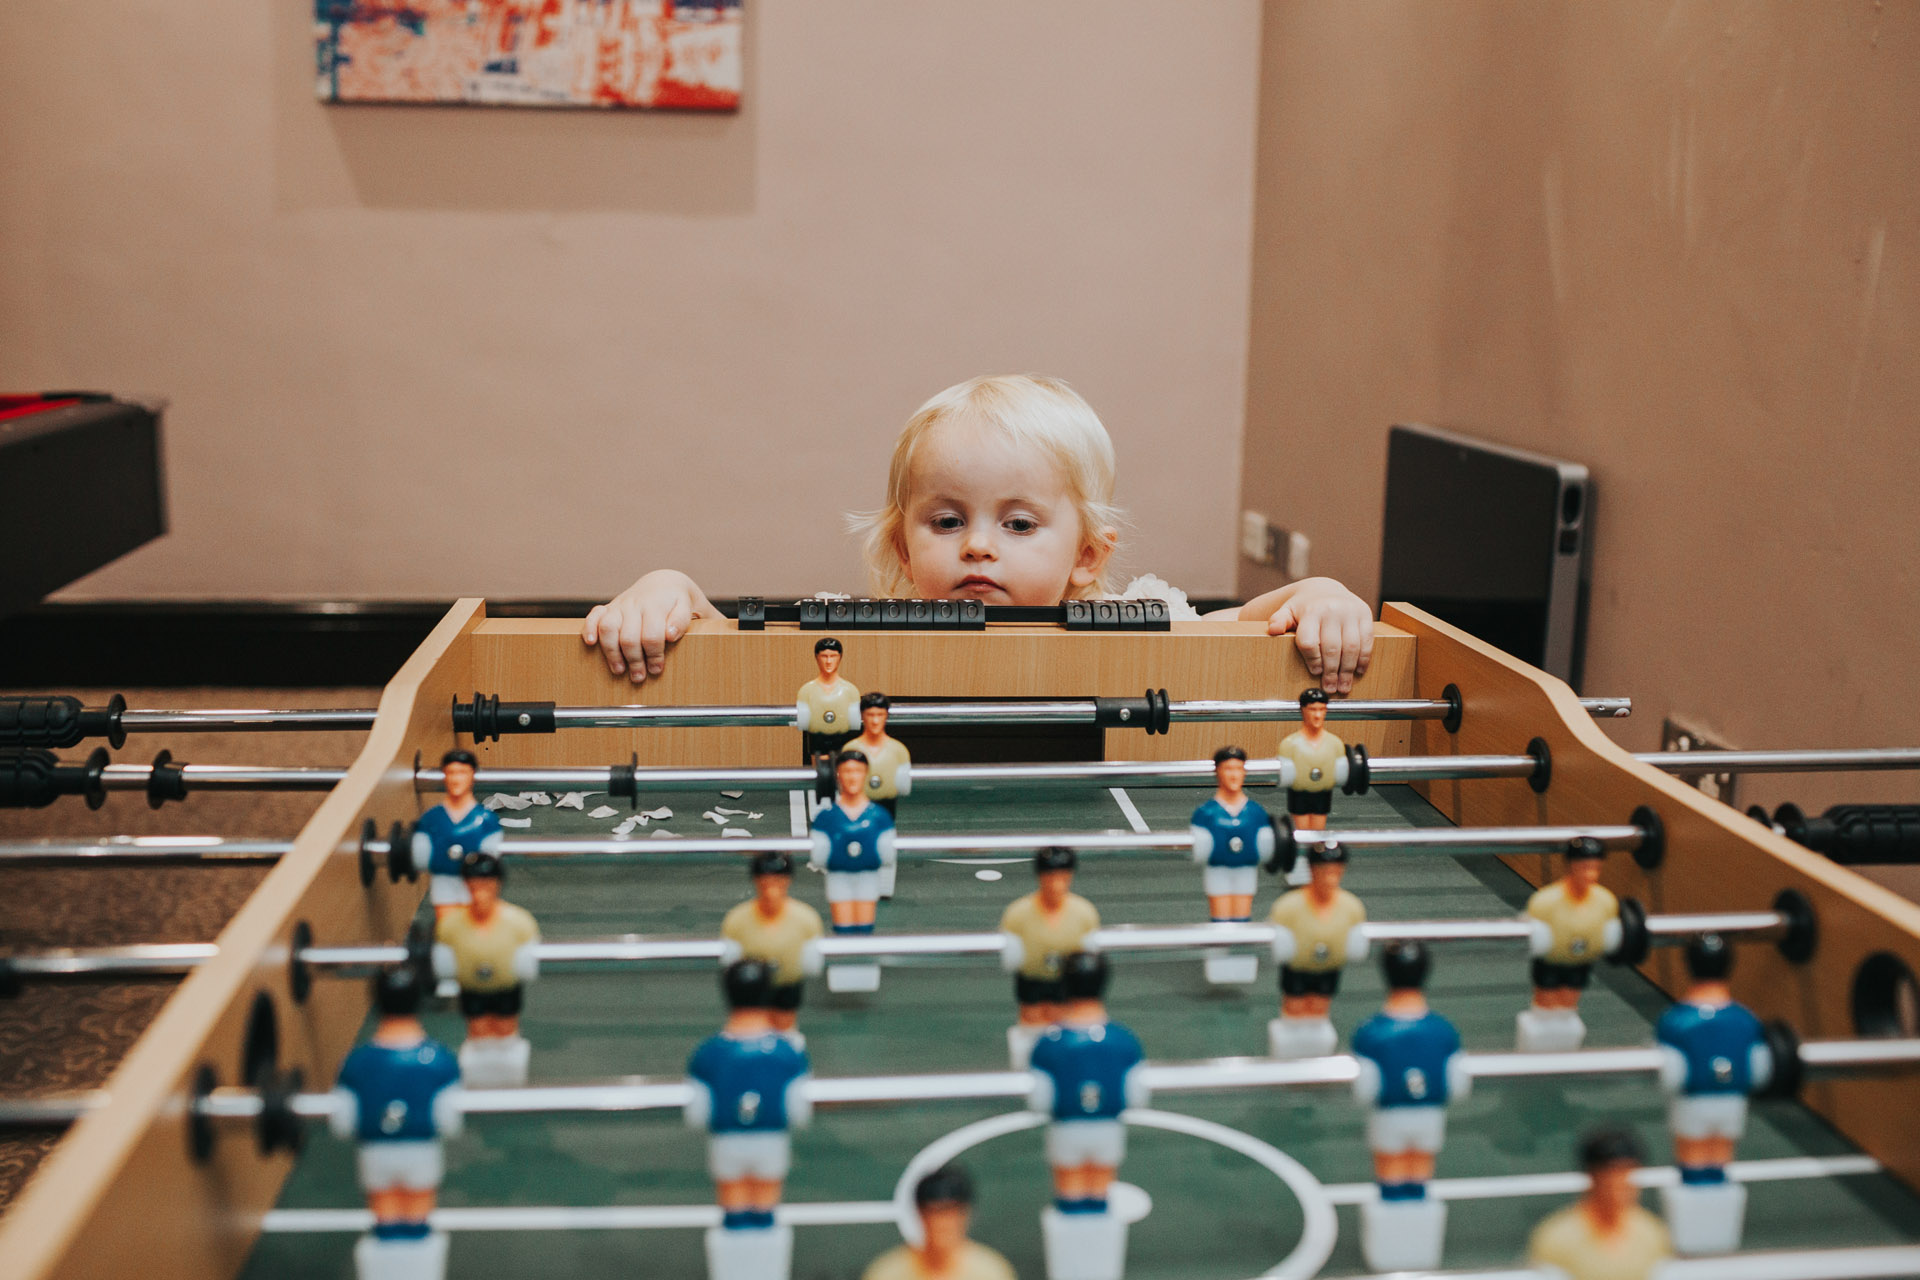 Toddler looking at table football.